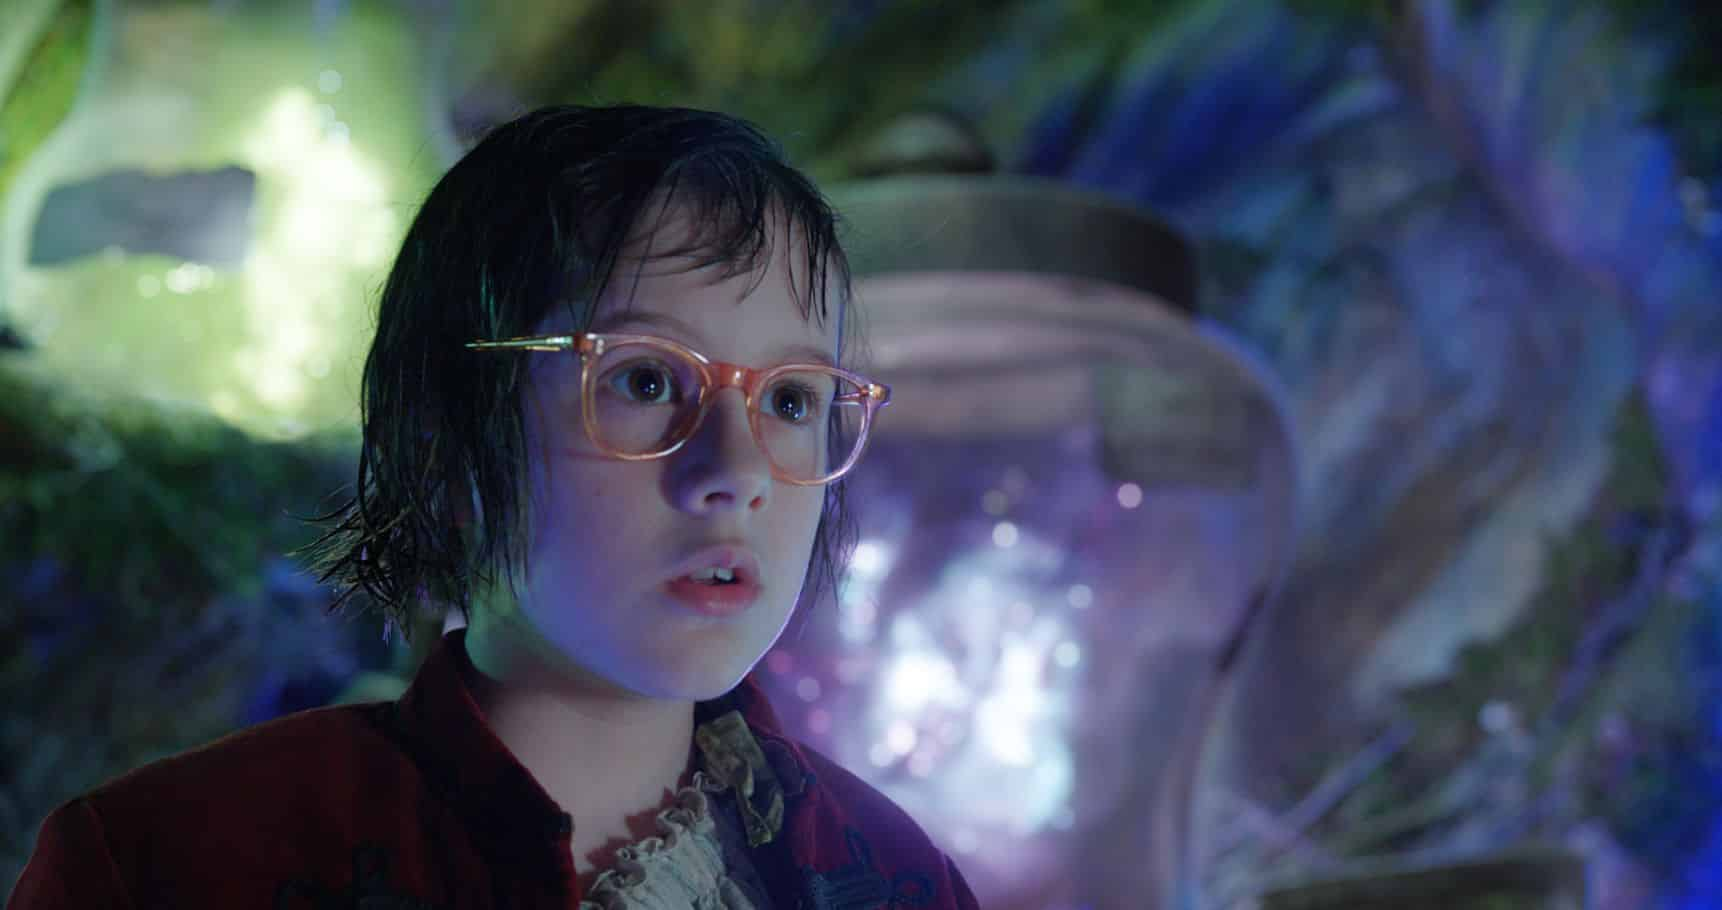 Ruby Barnhill is Sophie in Disney's imaginative adventure, THE BFG, directed by Steven Spielberg and based on the best-selling book by Roald Dahl which tells the story of a young girl and the Giant (Oscar (R) winner Mark Rylance) who introduces her to the wonders and perils of Giant Country. The film opens in theaters nationwide on July 1.